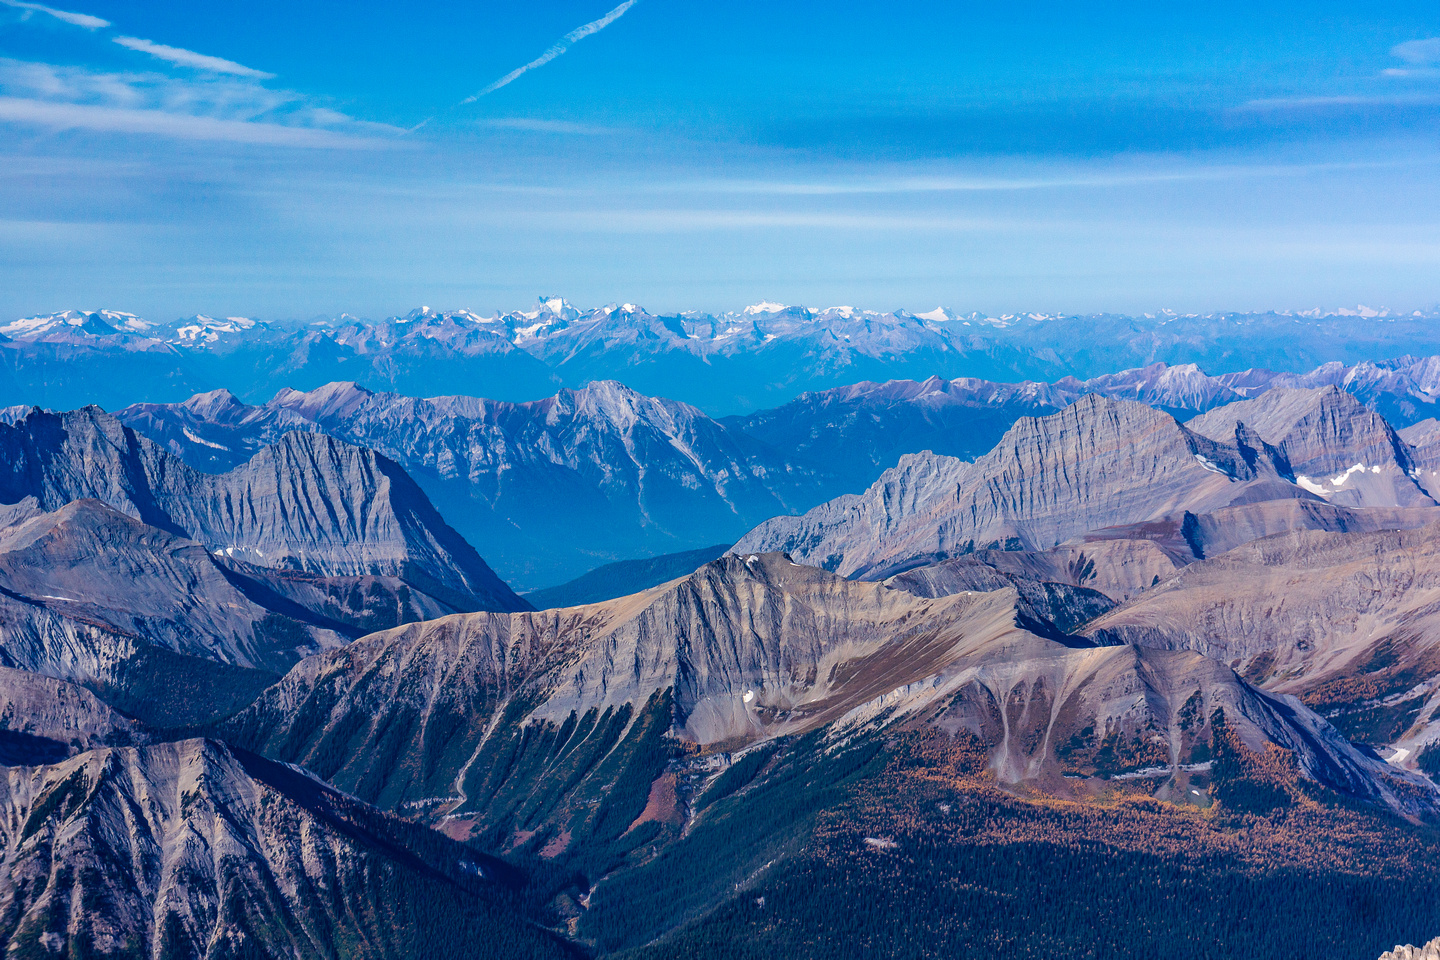 Looking over Mount Sam and the Mitchell Range to the distant Bugaboos.